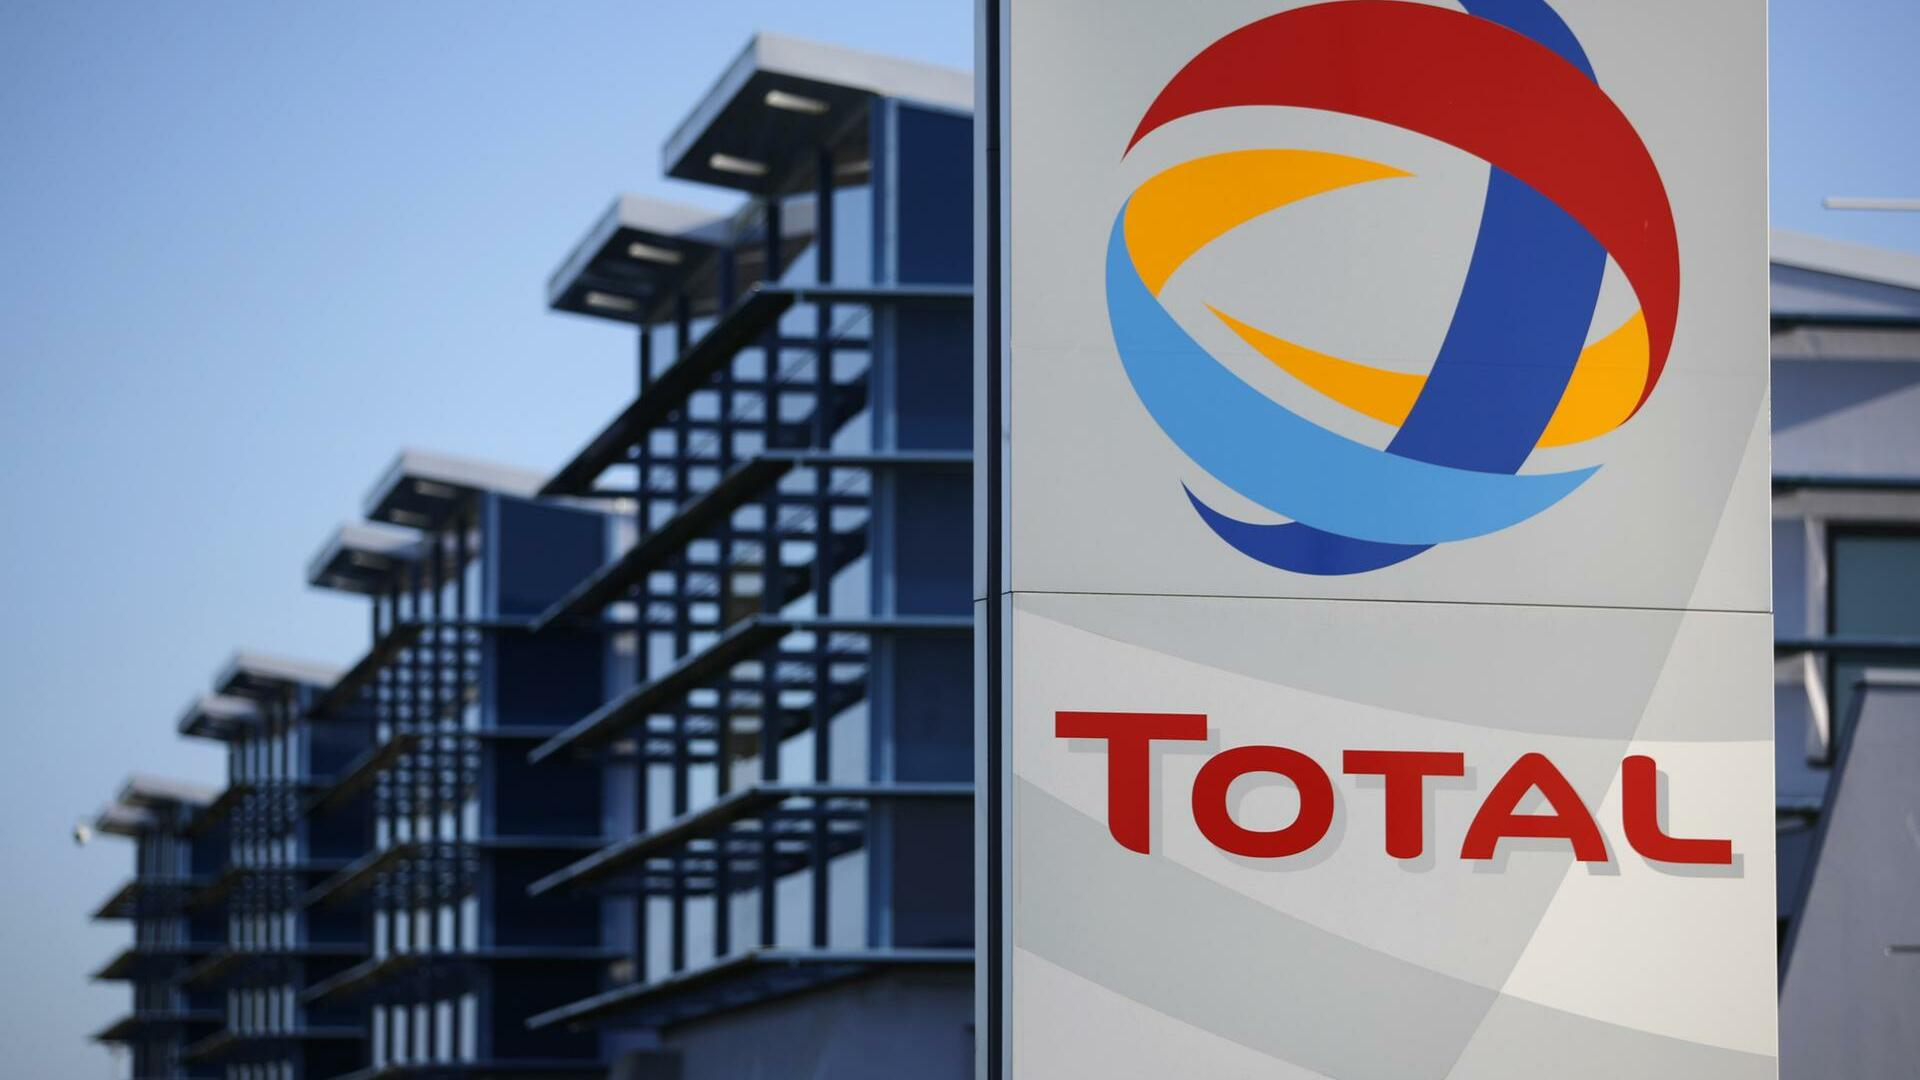 Logo von Total Quelle: REUTERS